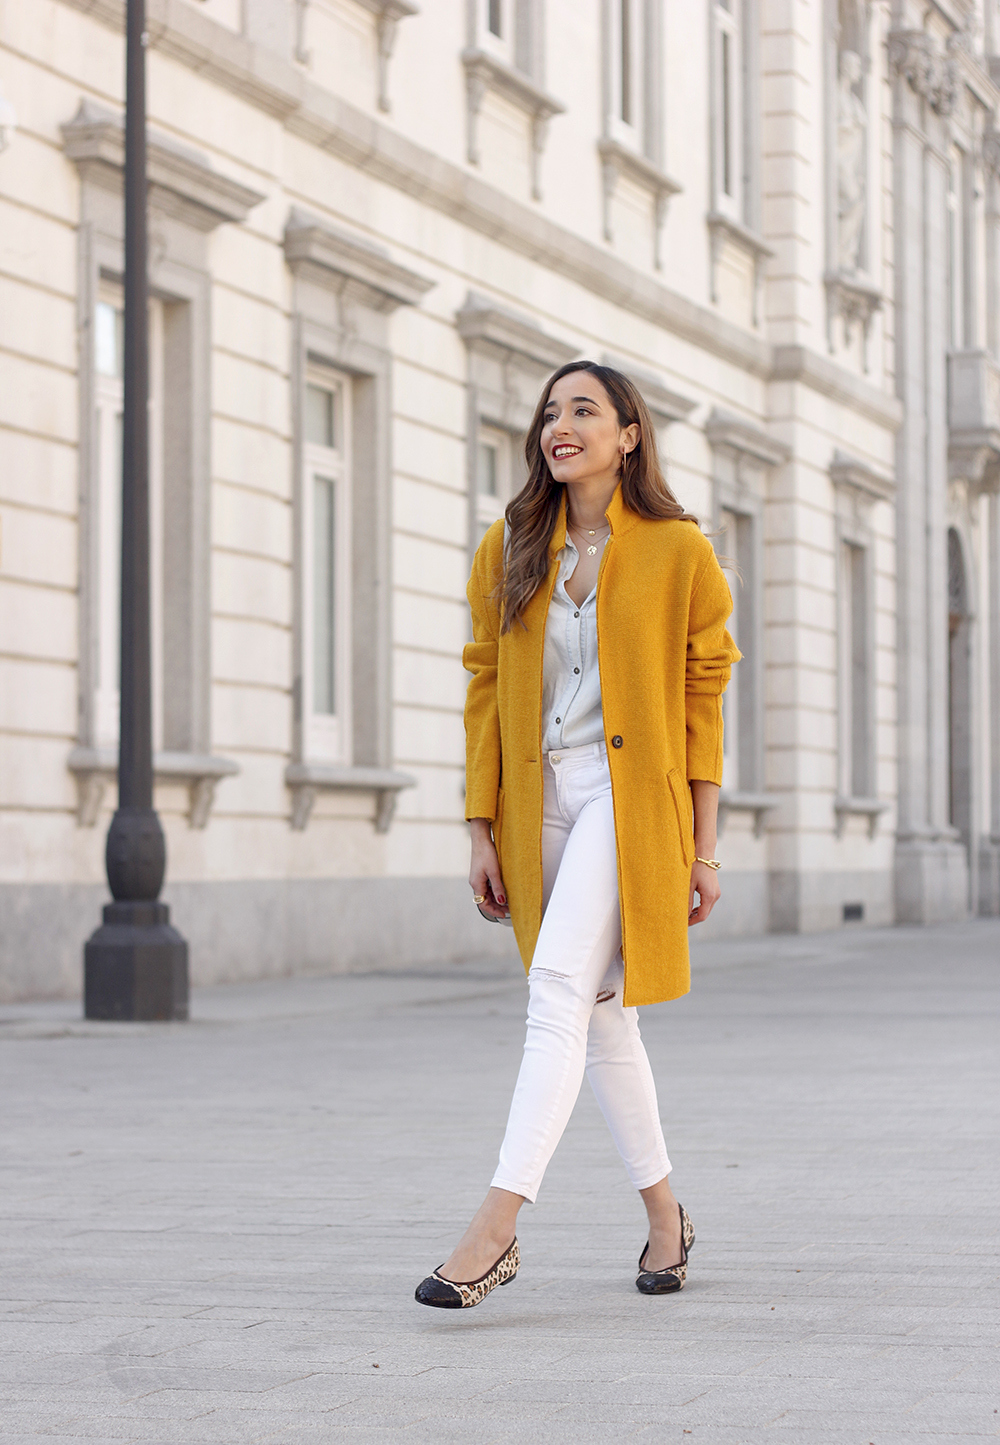 mustard coat ripped white jeans leopard flats calvin klein bag street style outfit 20197